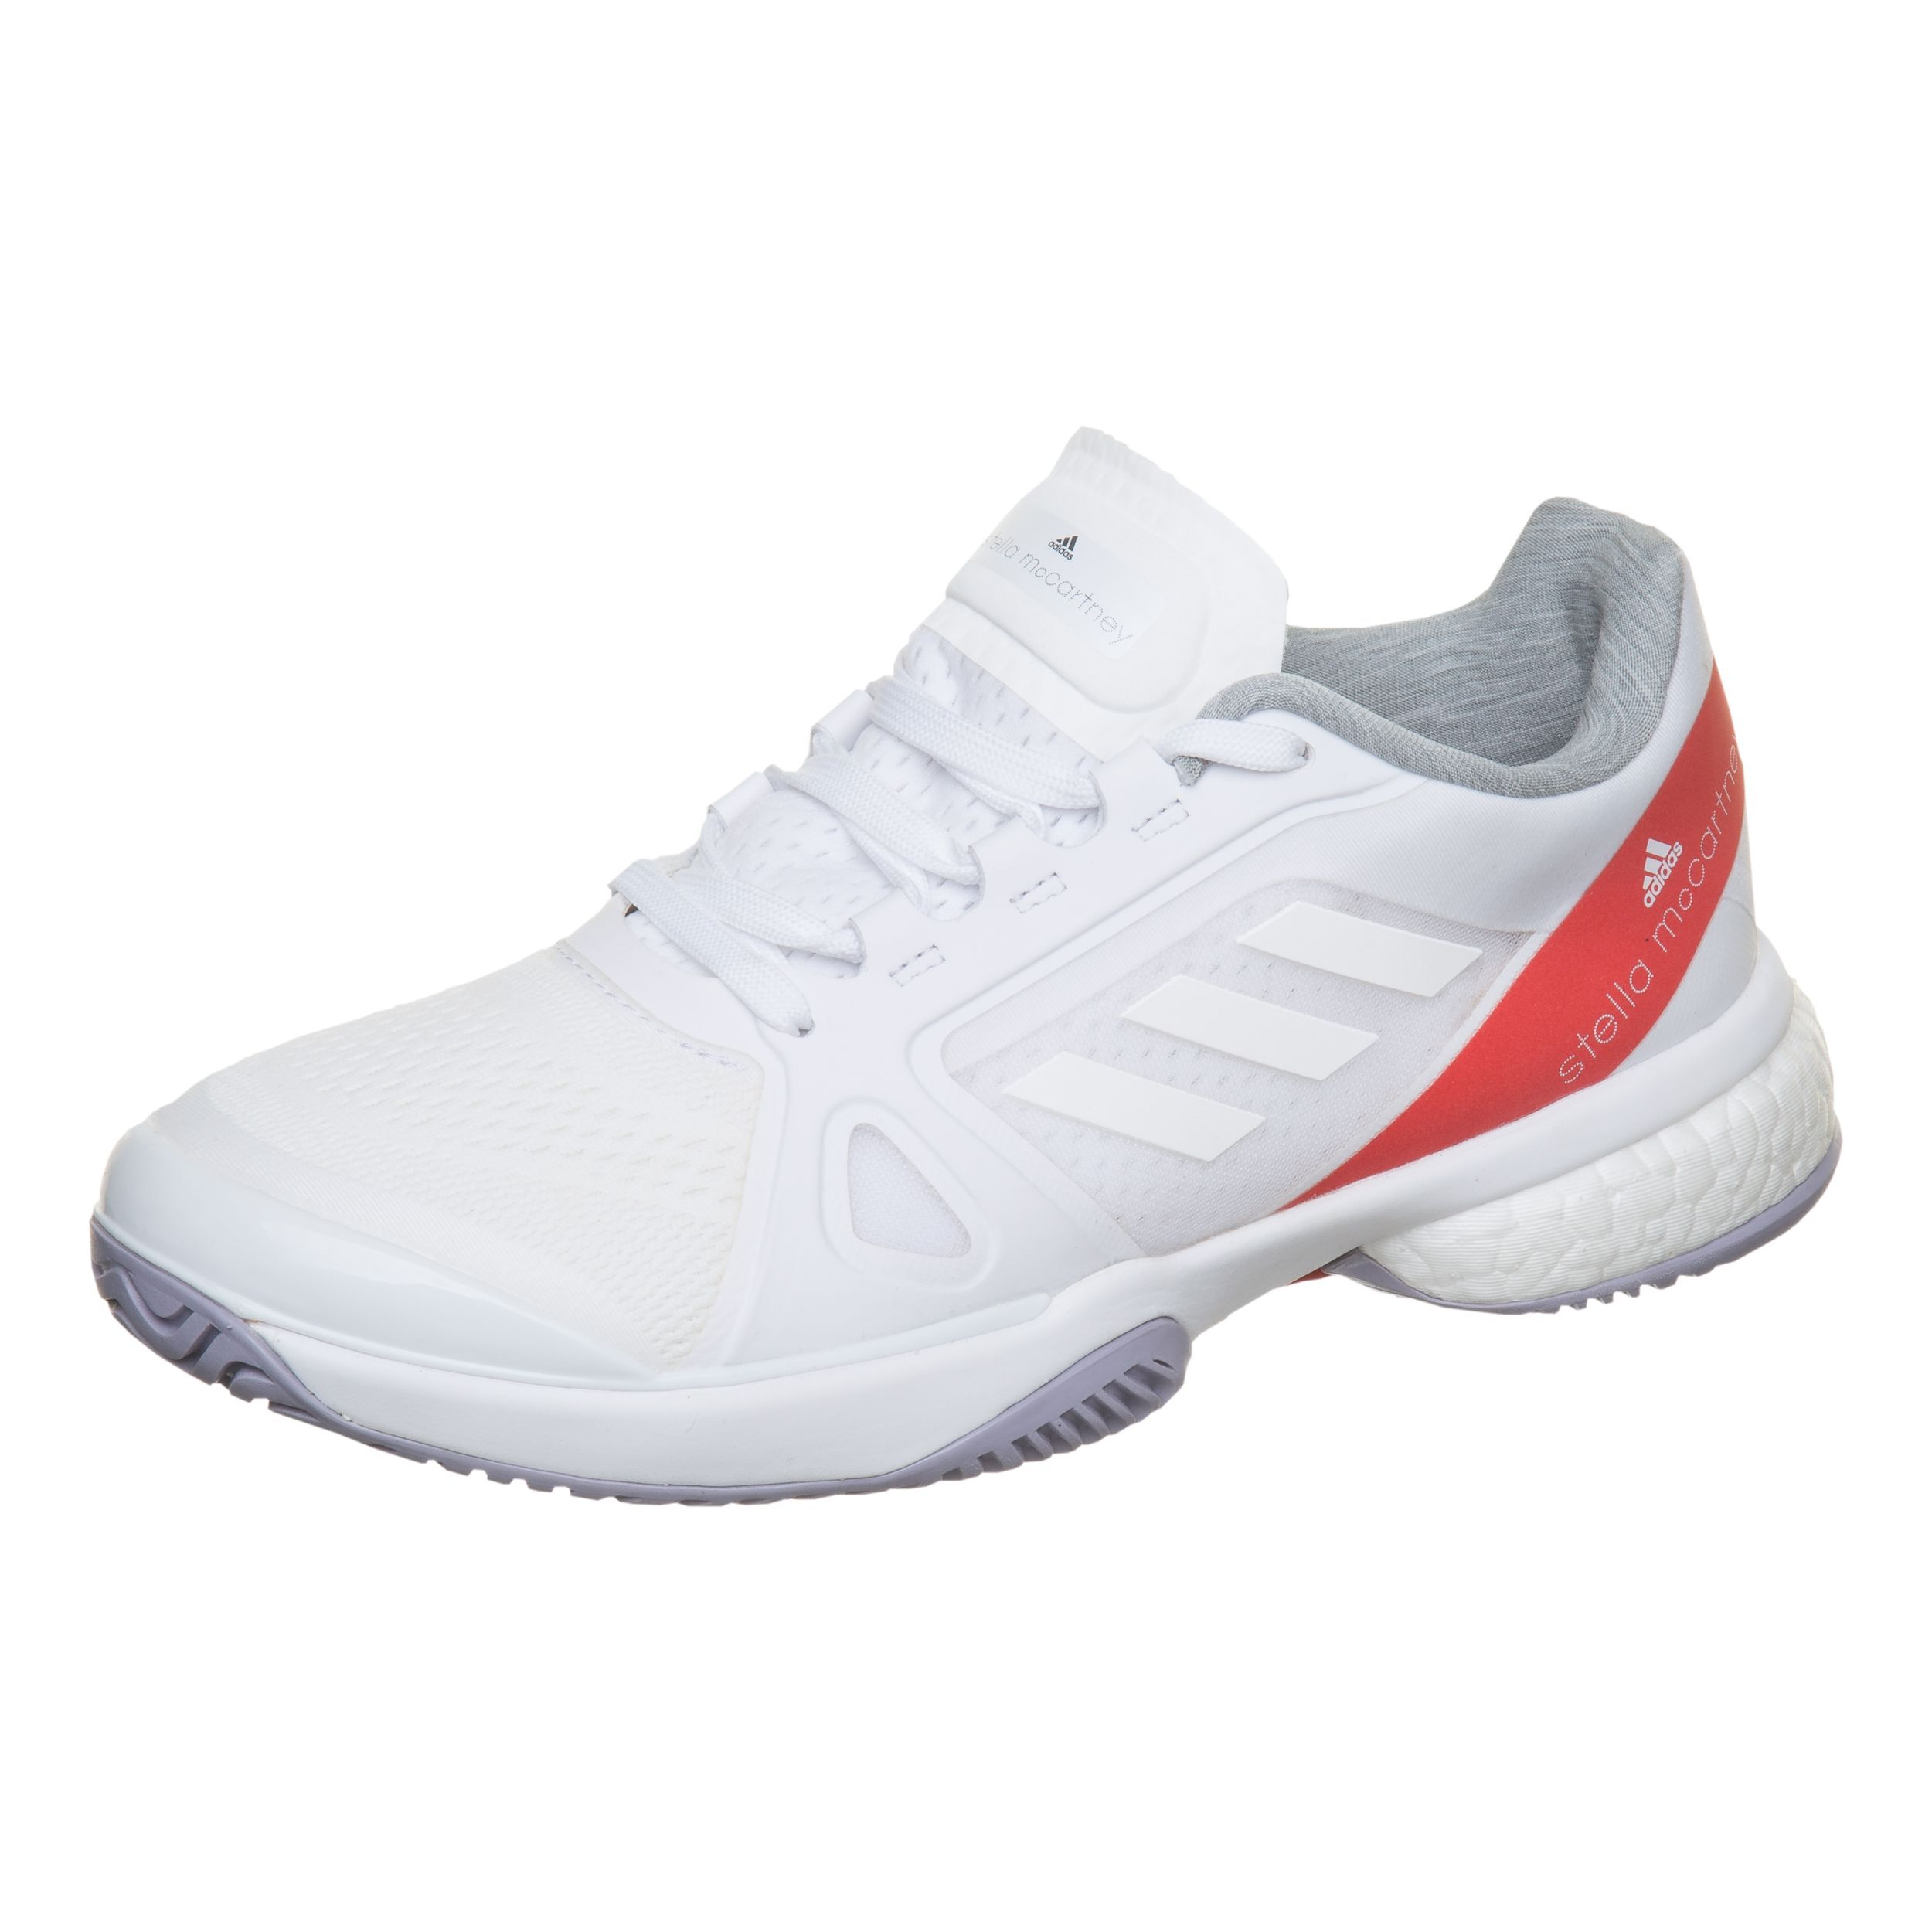 Scarpa Adidas Stella McCartney Barricade Boost 2018 Shop